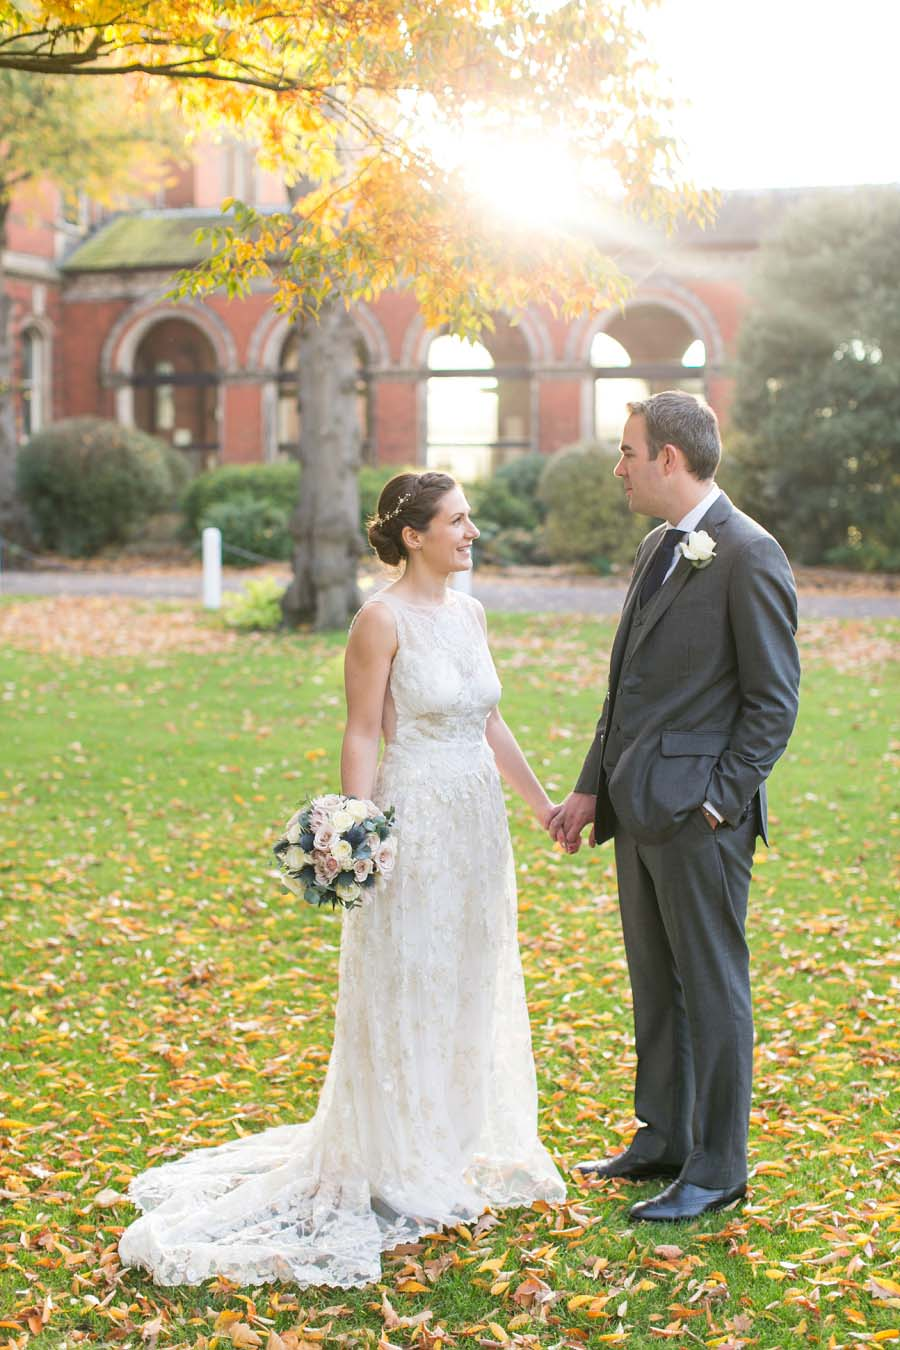 sunny autumnal wedding66